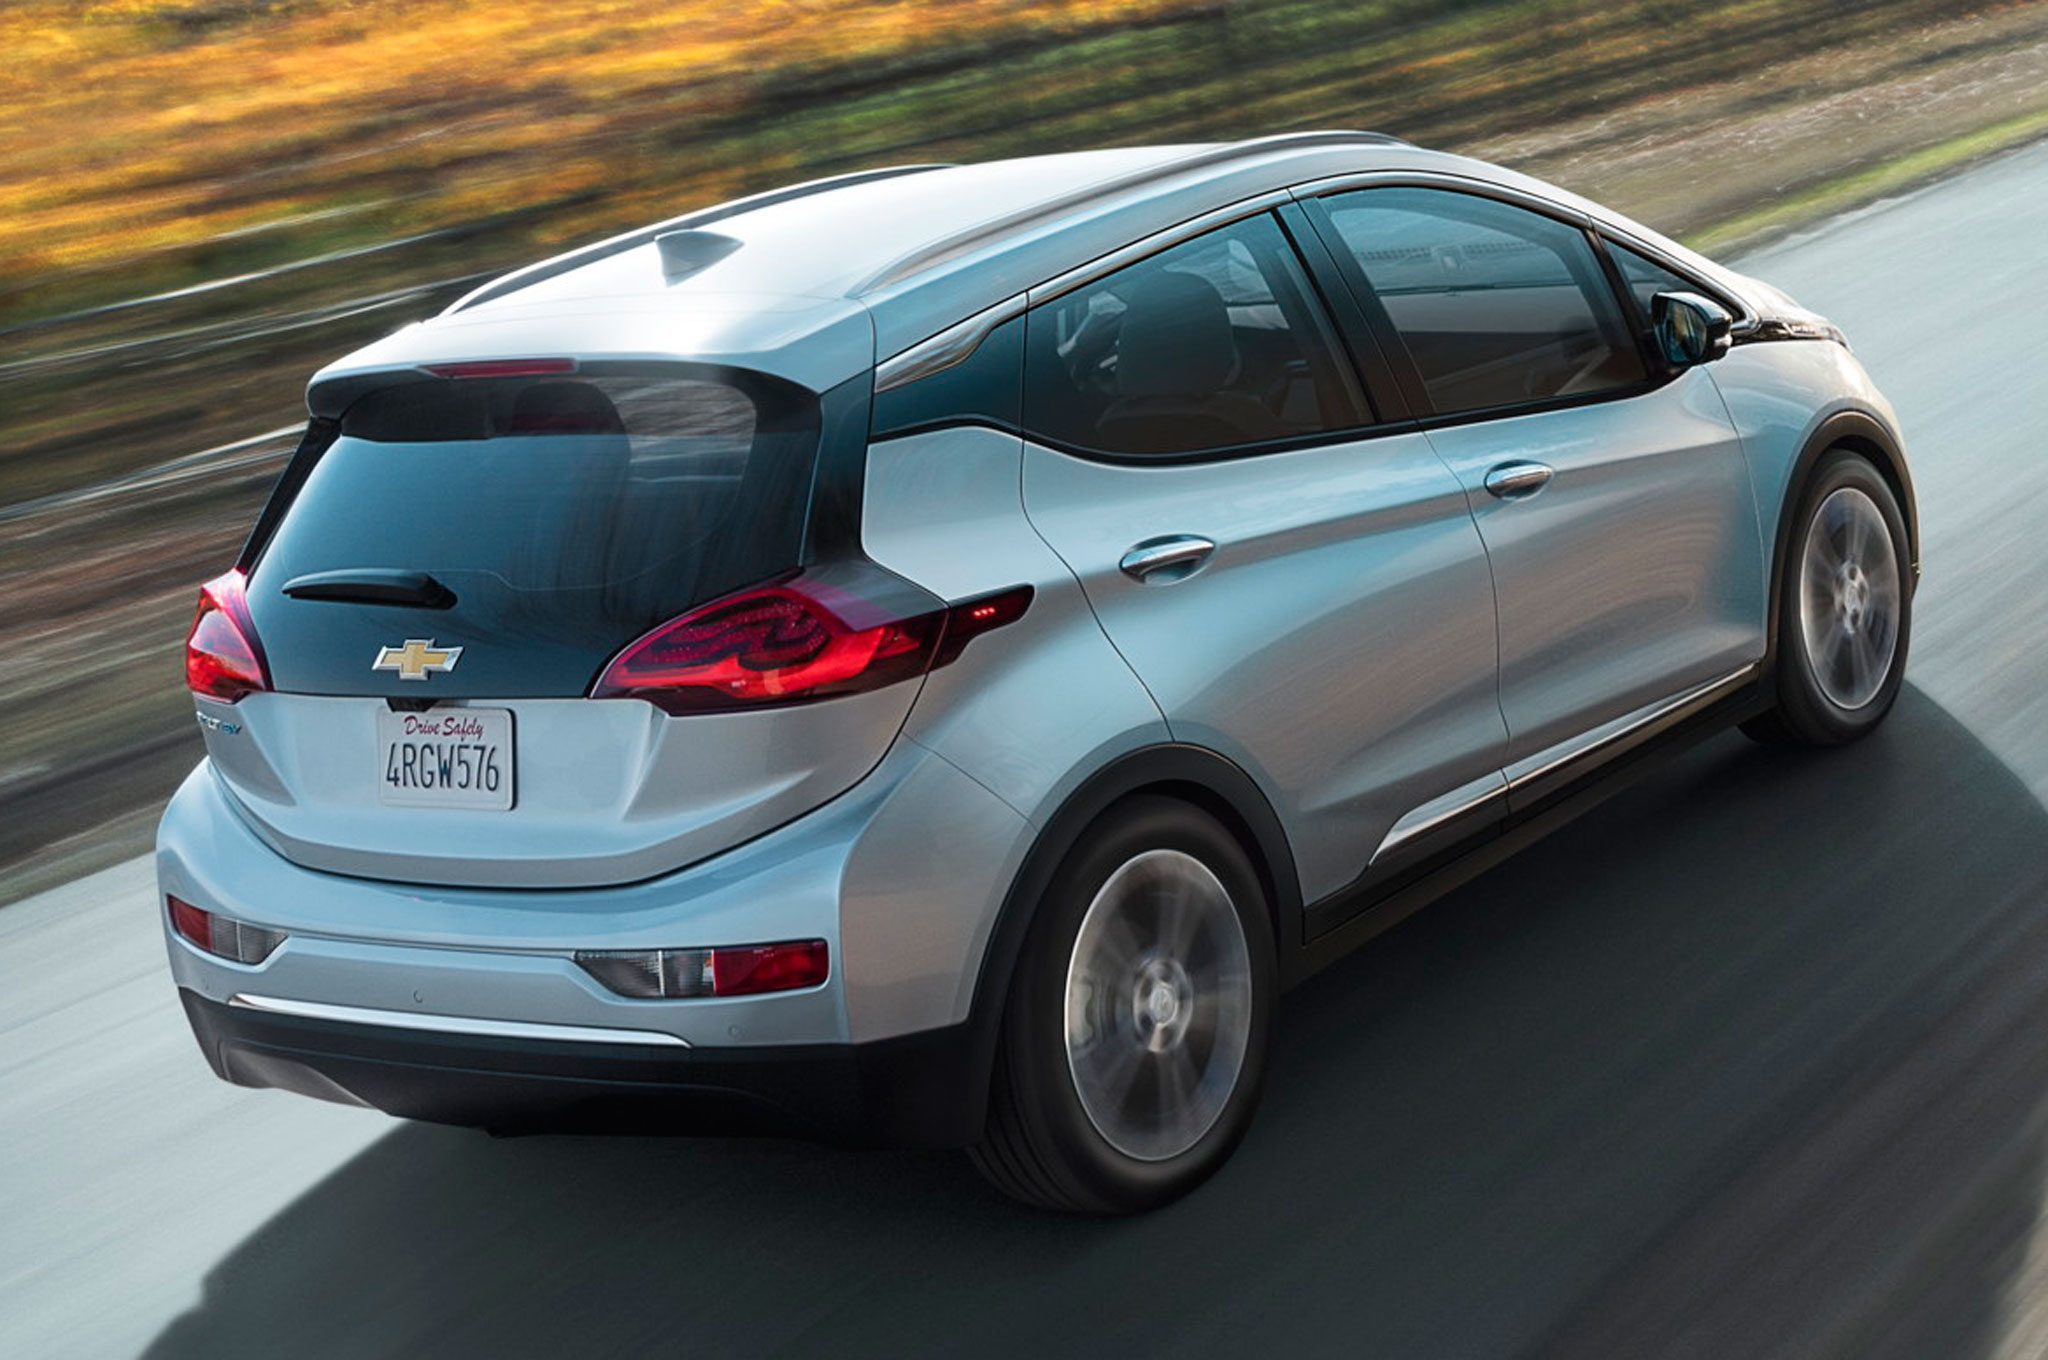 2017-Chevrolet-Bolt-EV-rear-side-view2